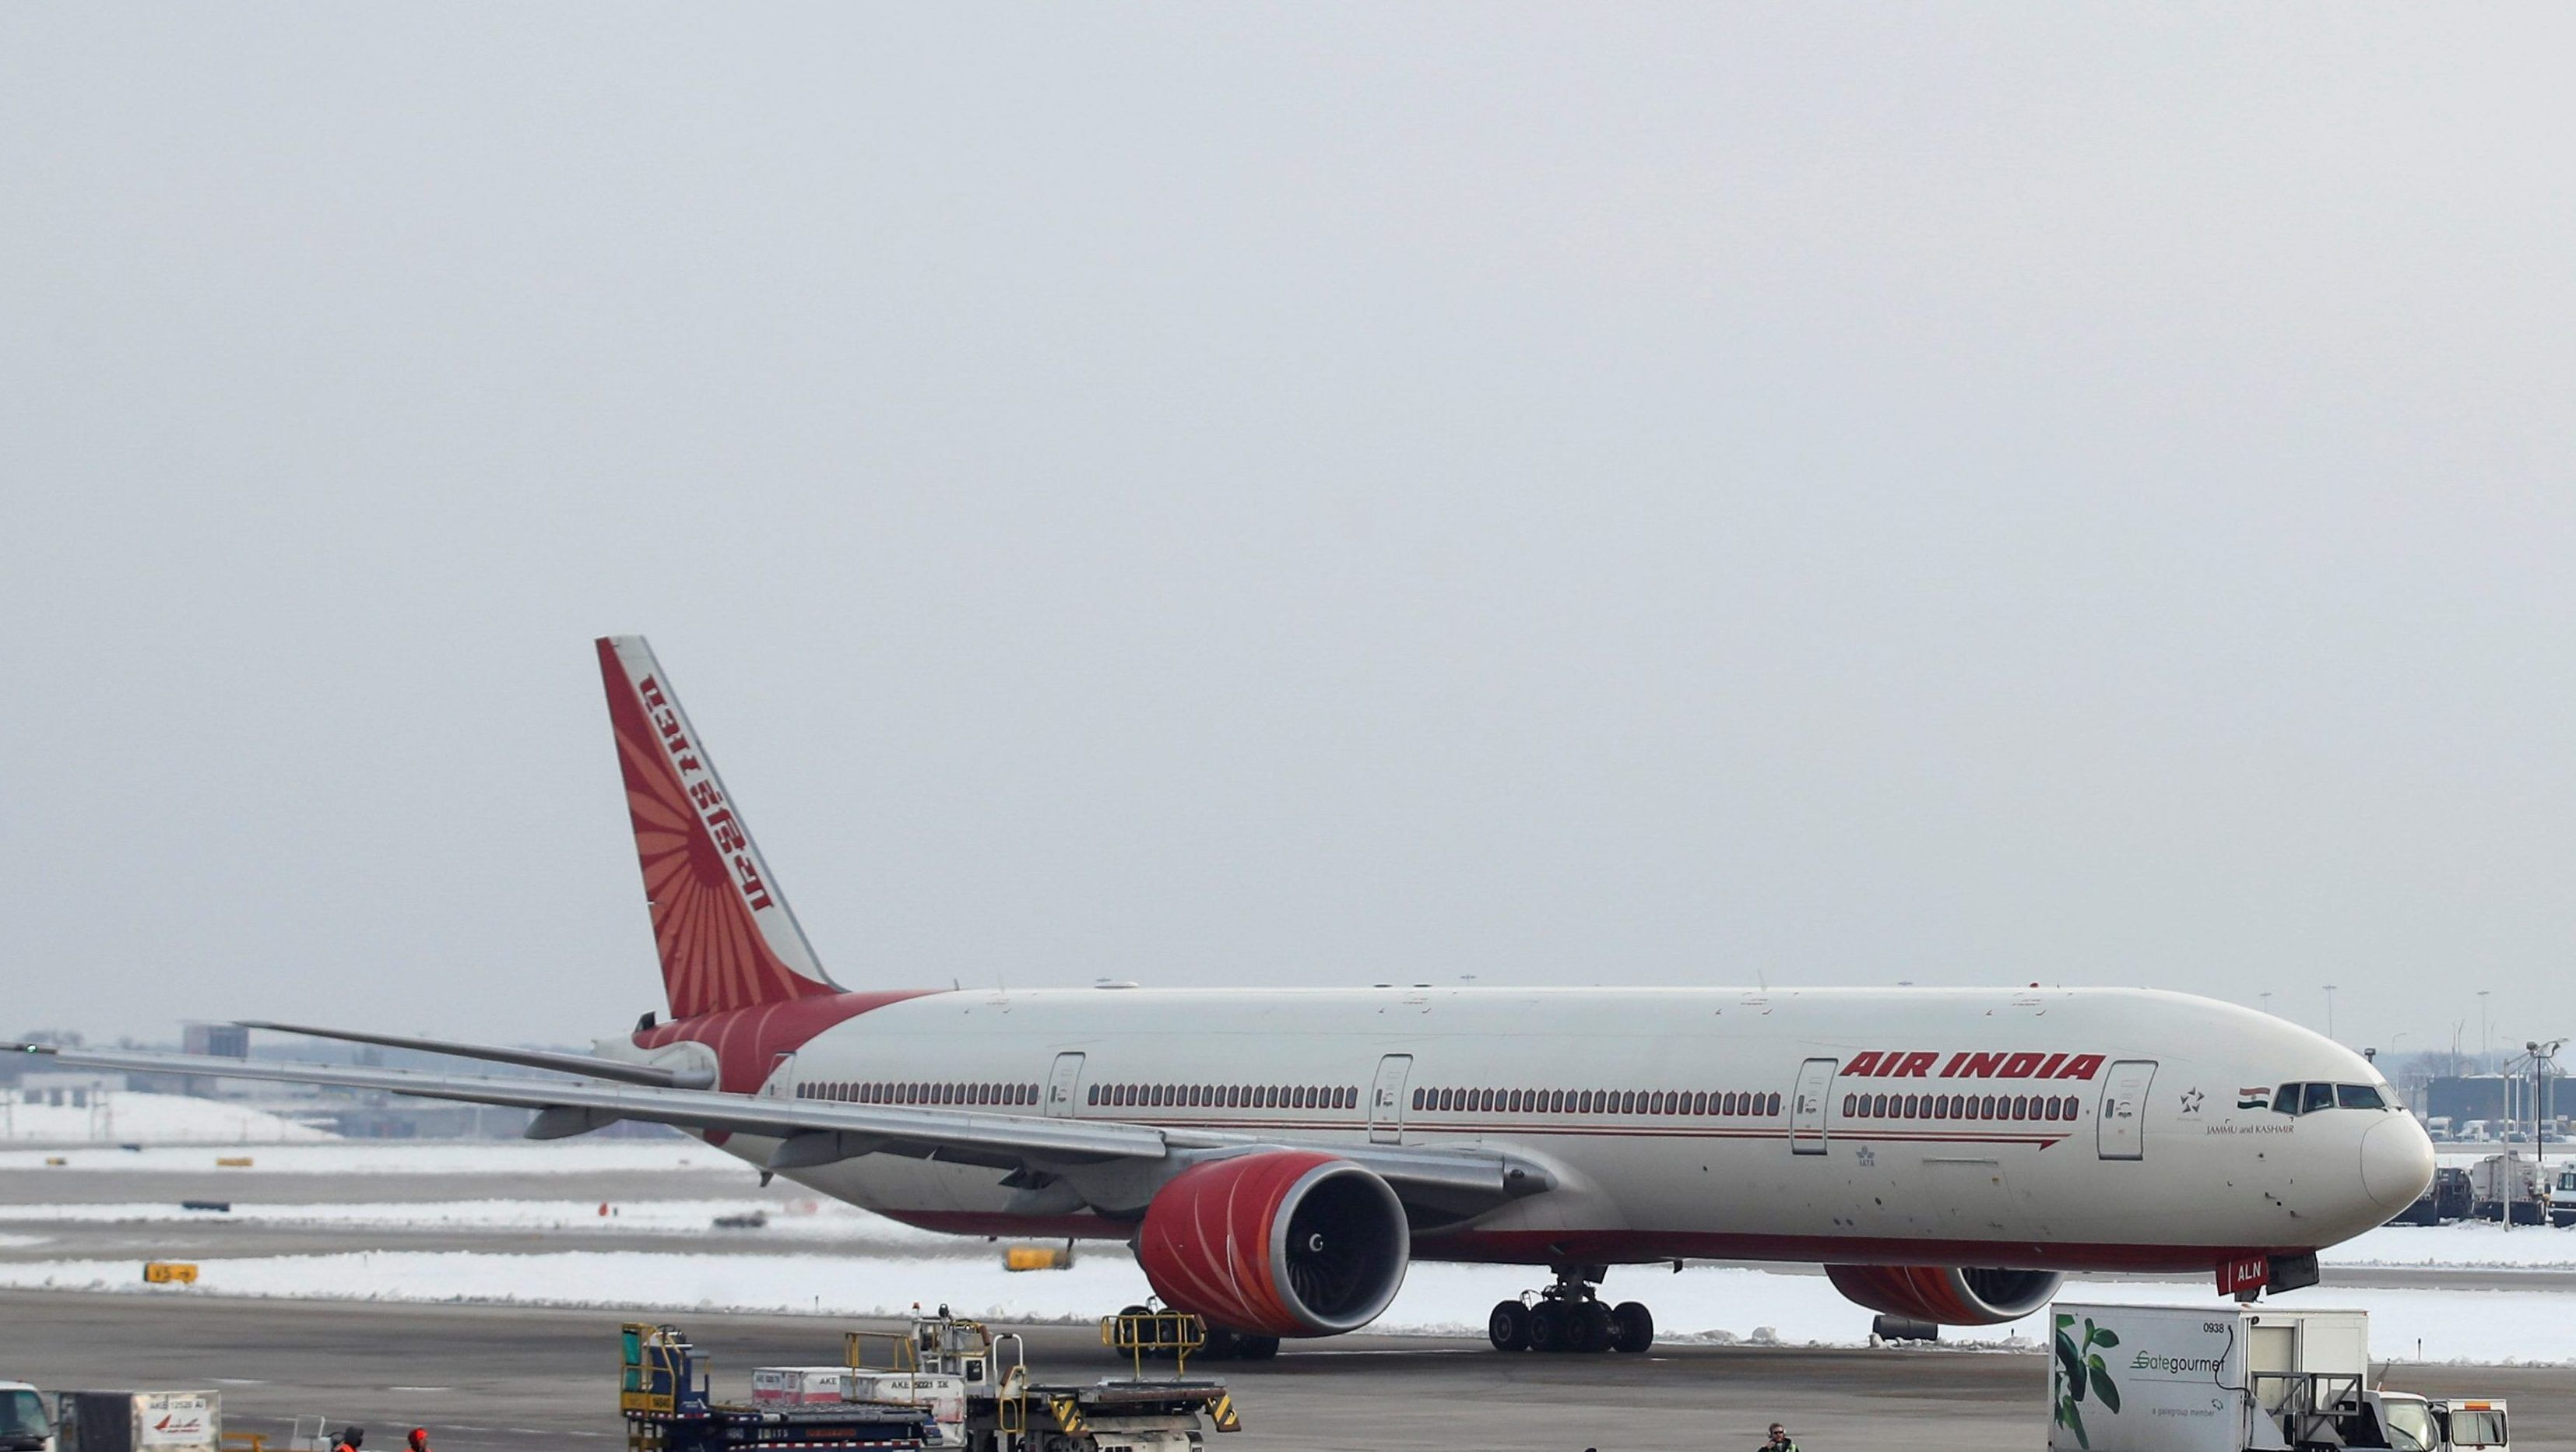 Even in trying times, India's private airlines take part in coronavirus relief